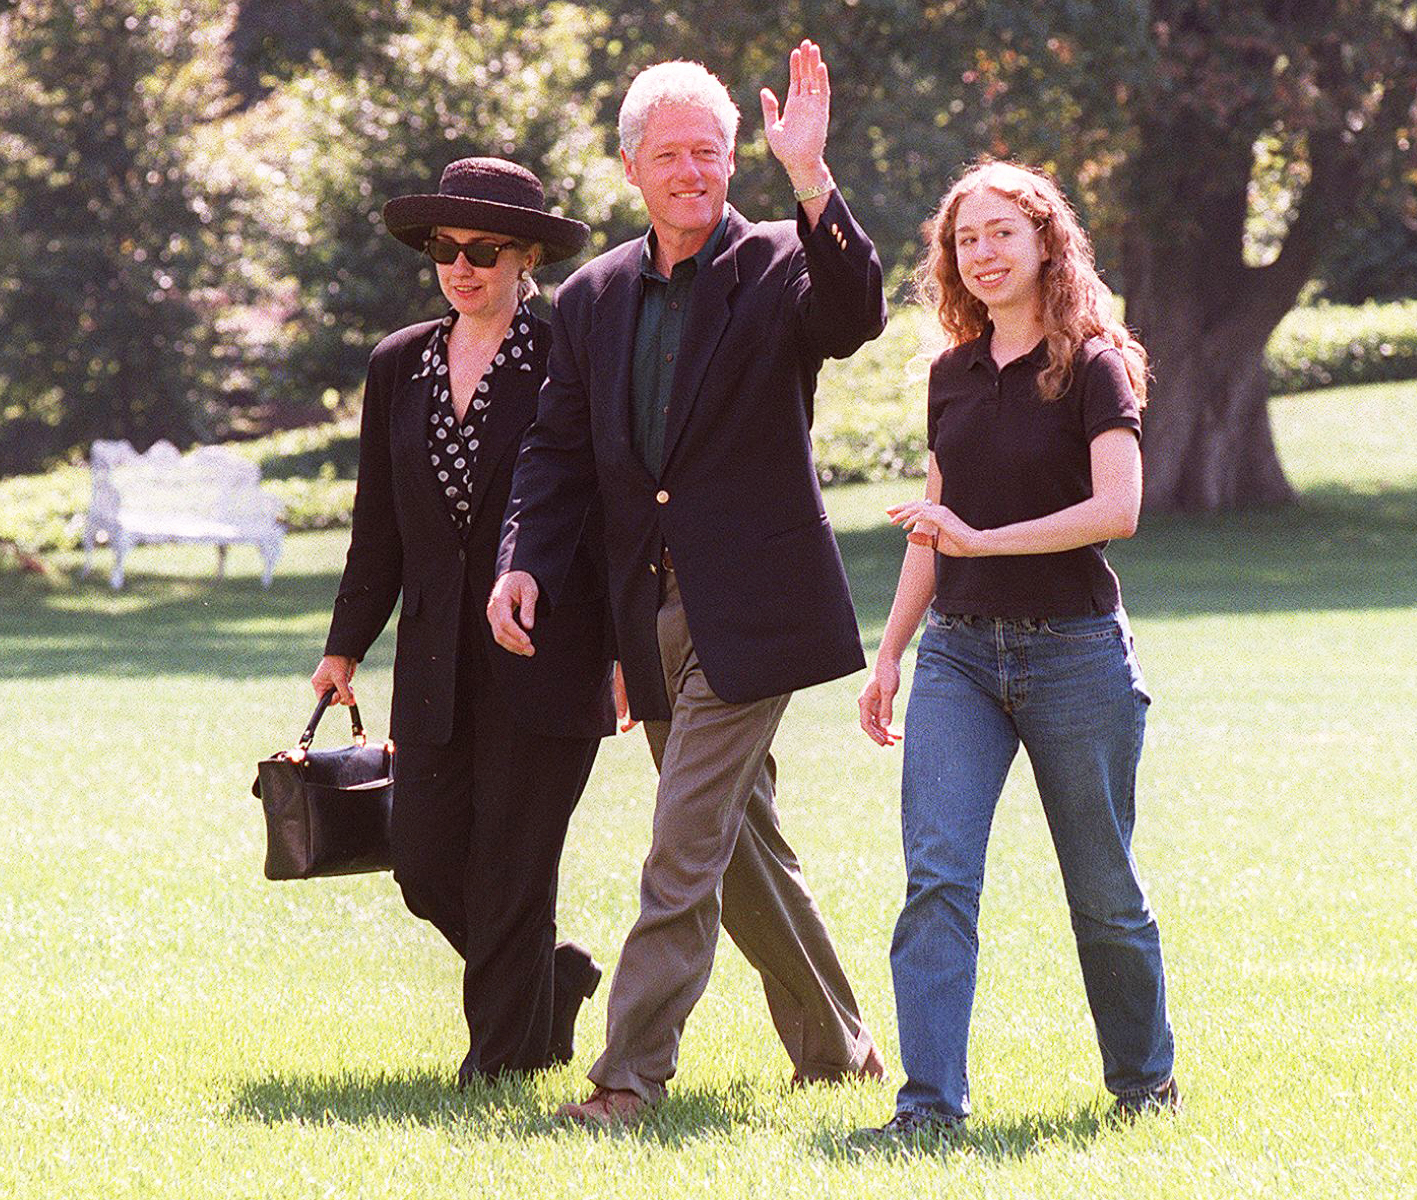 US President Bill Clinton, First Lady Hillary Clinton and daughter Chelsea arrive at the White House in Washington, DC in September after their three-week vacation In Martha's Vineyard, MA.